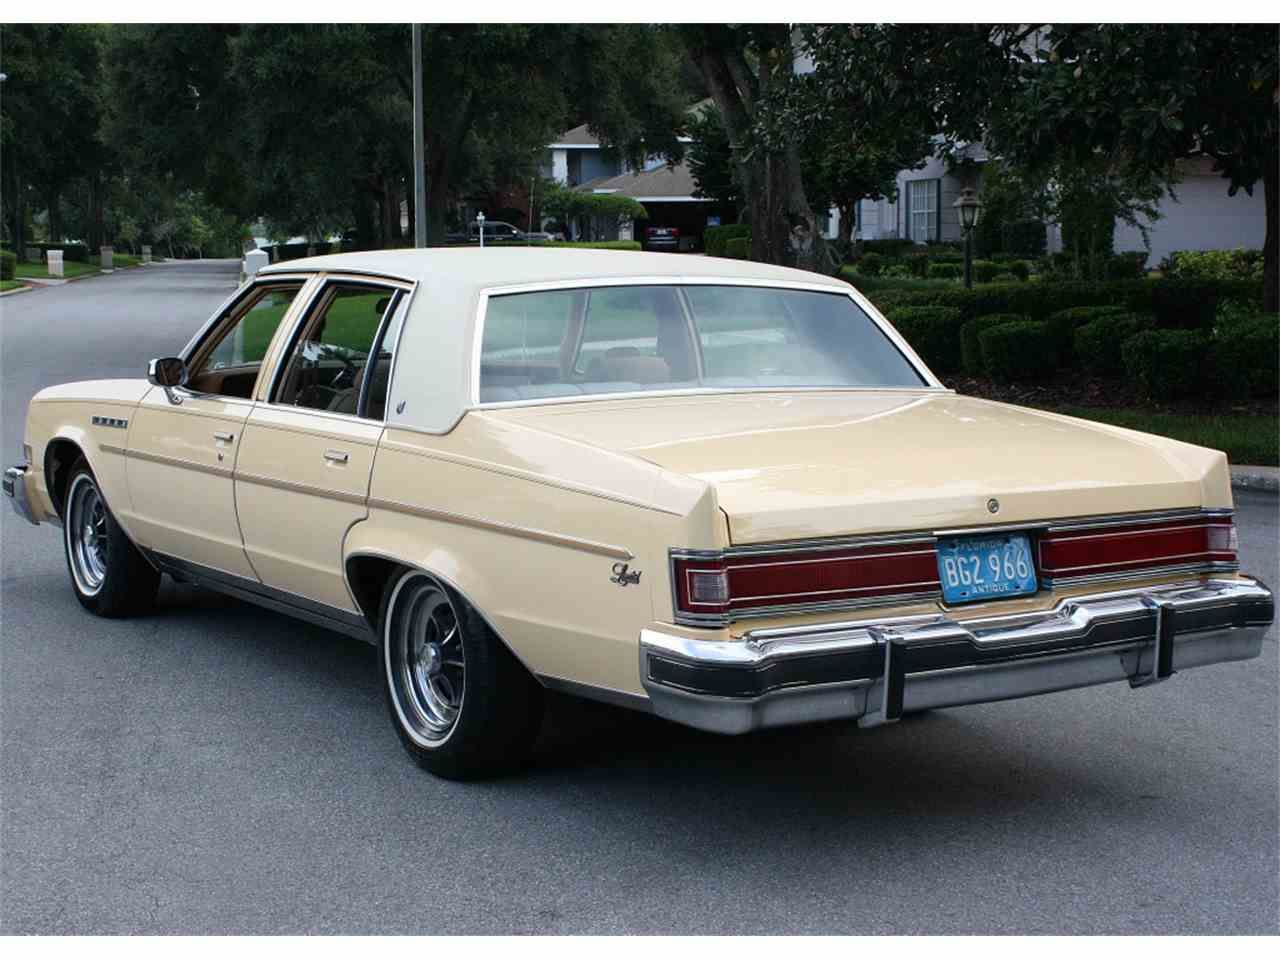 Large Picture of '78 Buick Electra located in lakeland Florida - $13,500.00 - J5J3